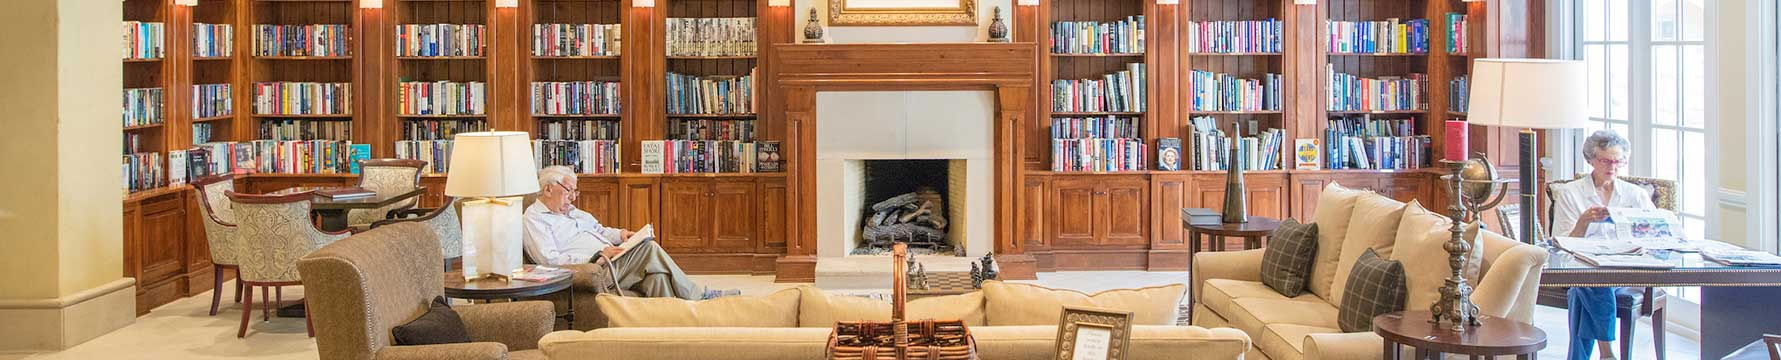 The library at Edgemere a senior living community in Dallas